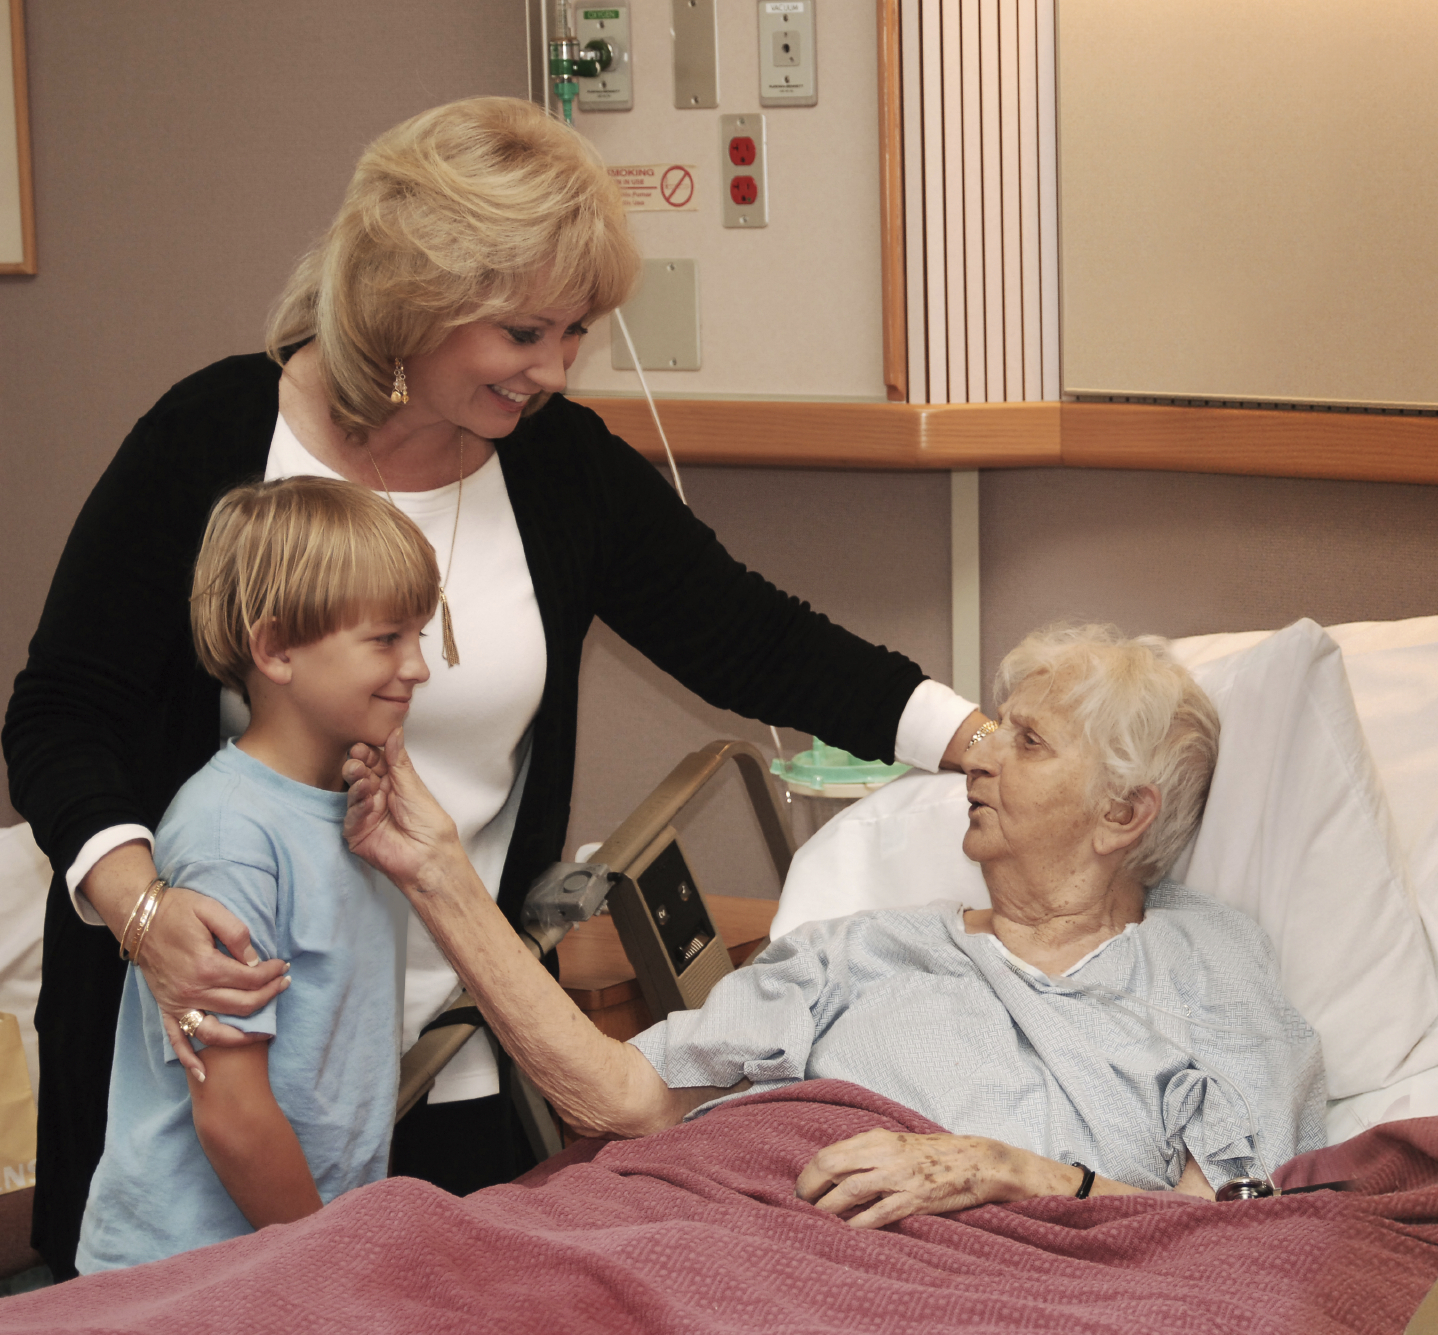 Hospital room with patient and family - Hospital Room With Patient And Family